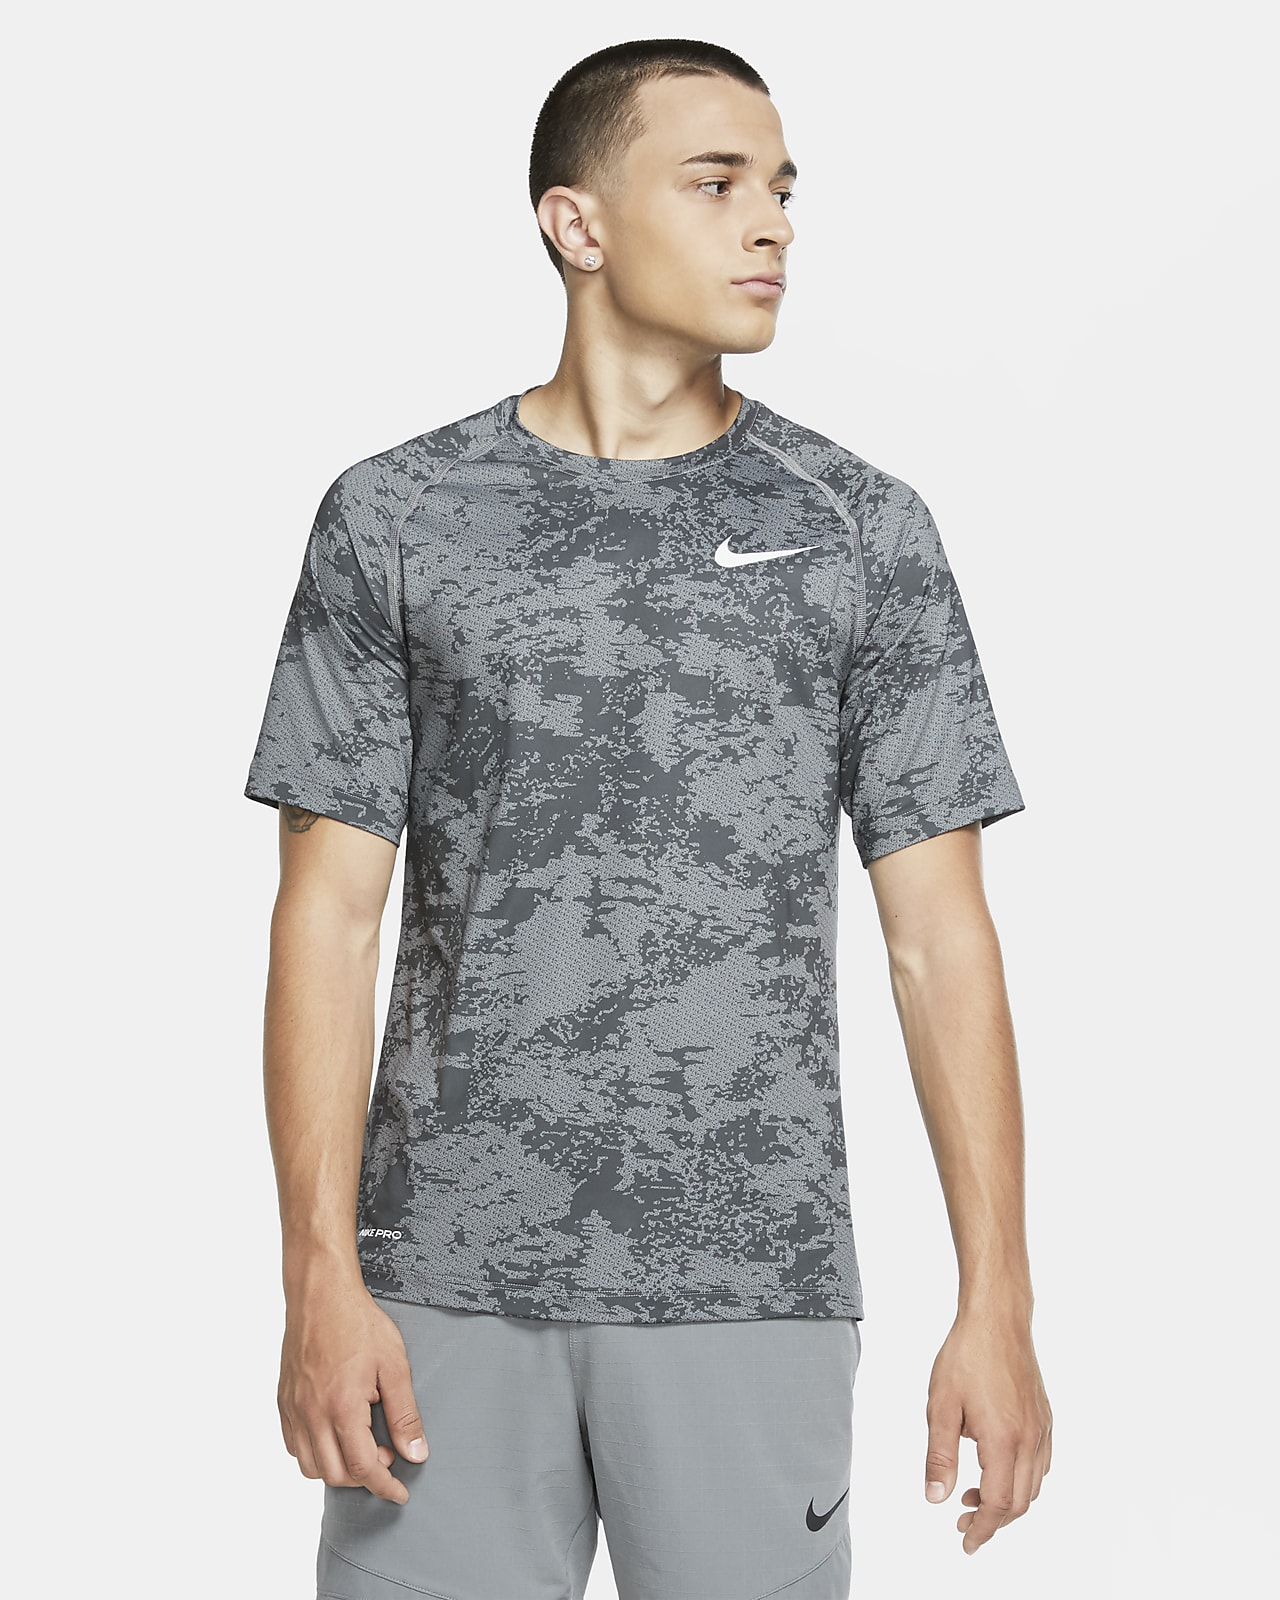 Nike Pro Men's Camo Short-Sleeve Top